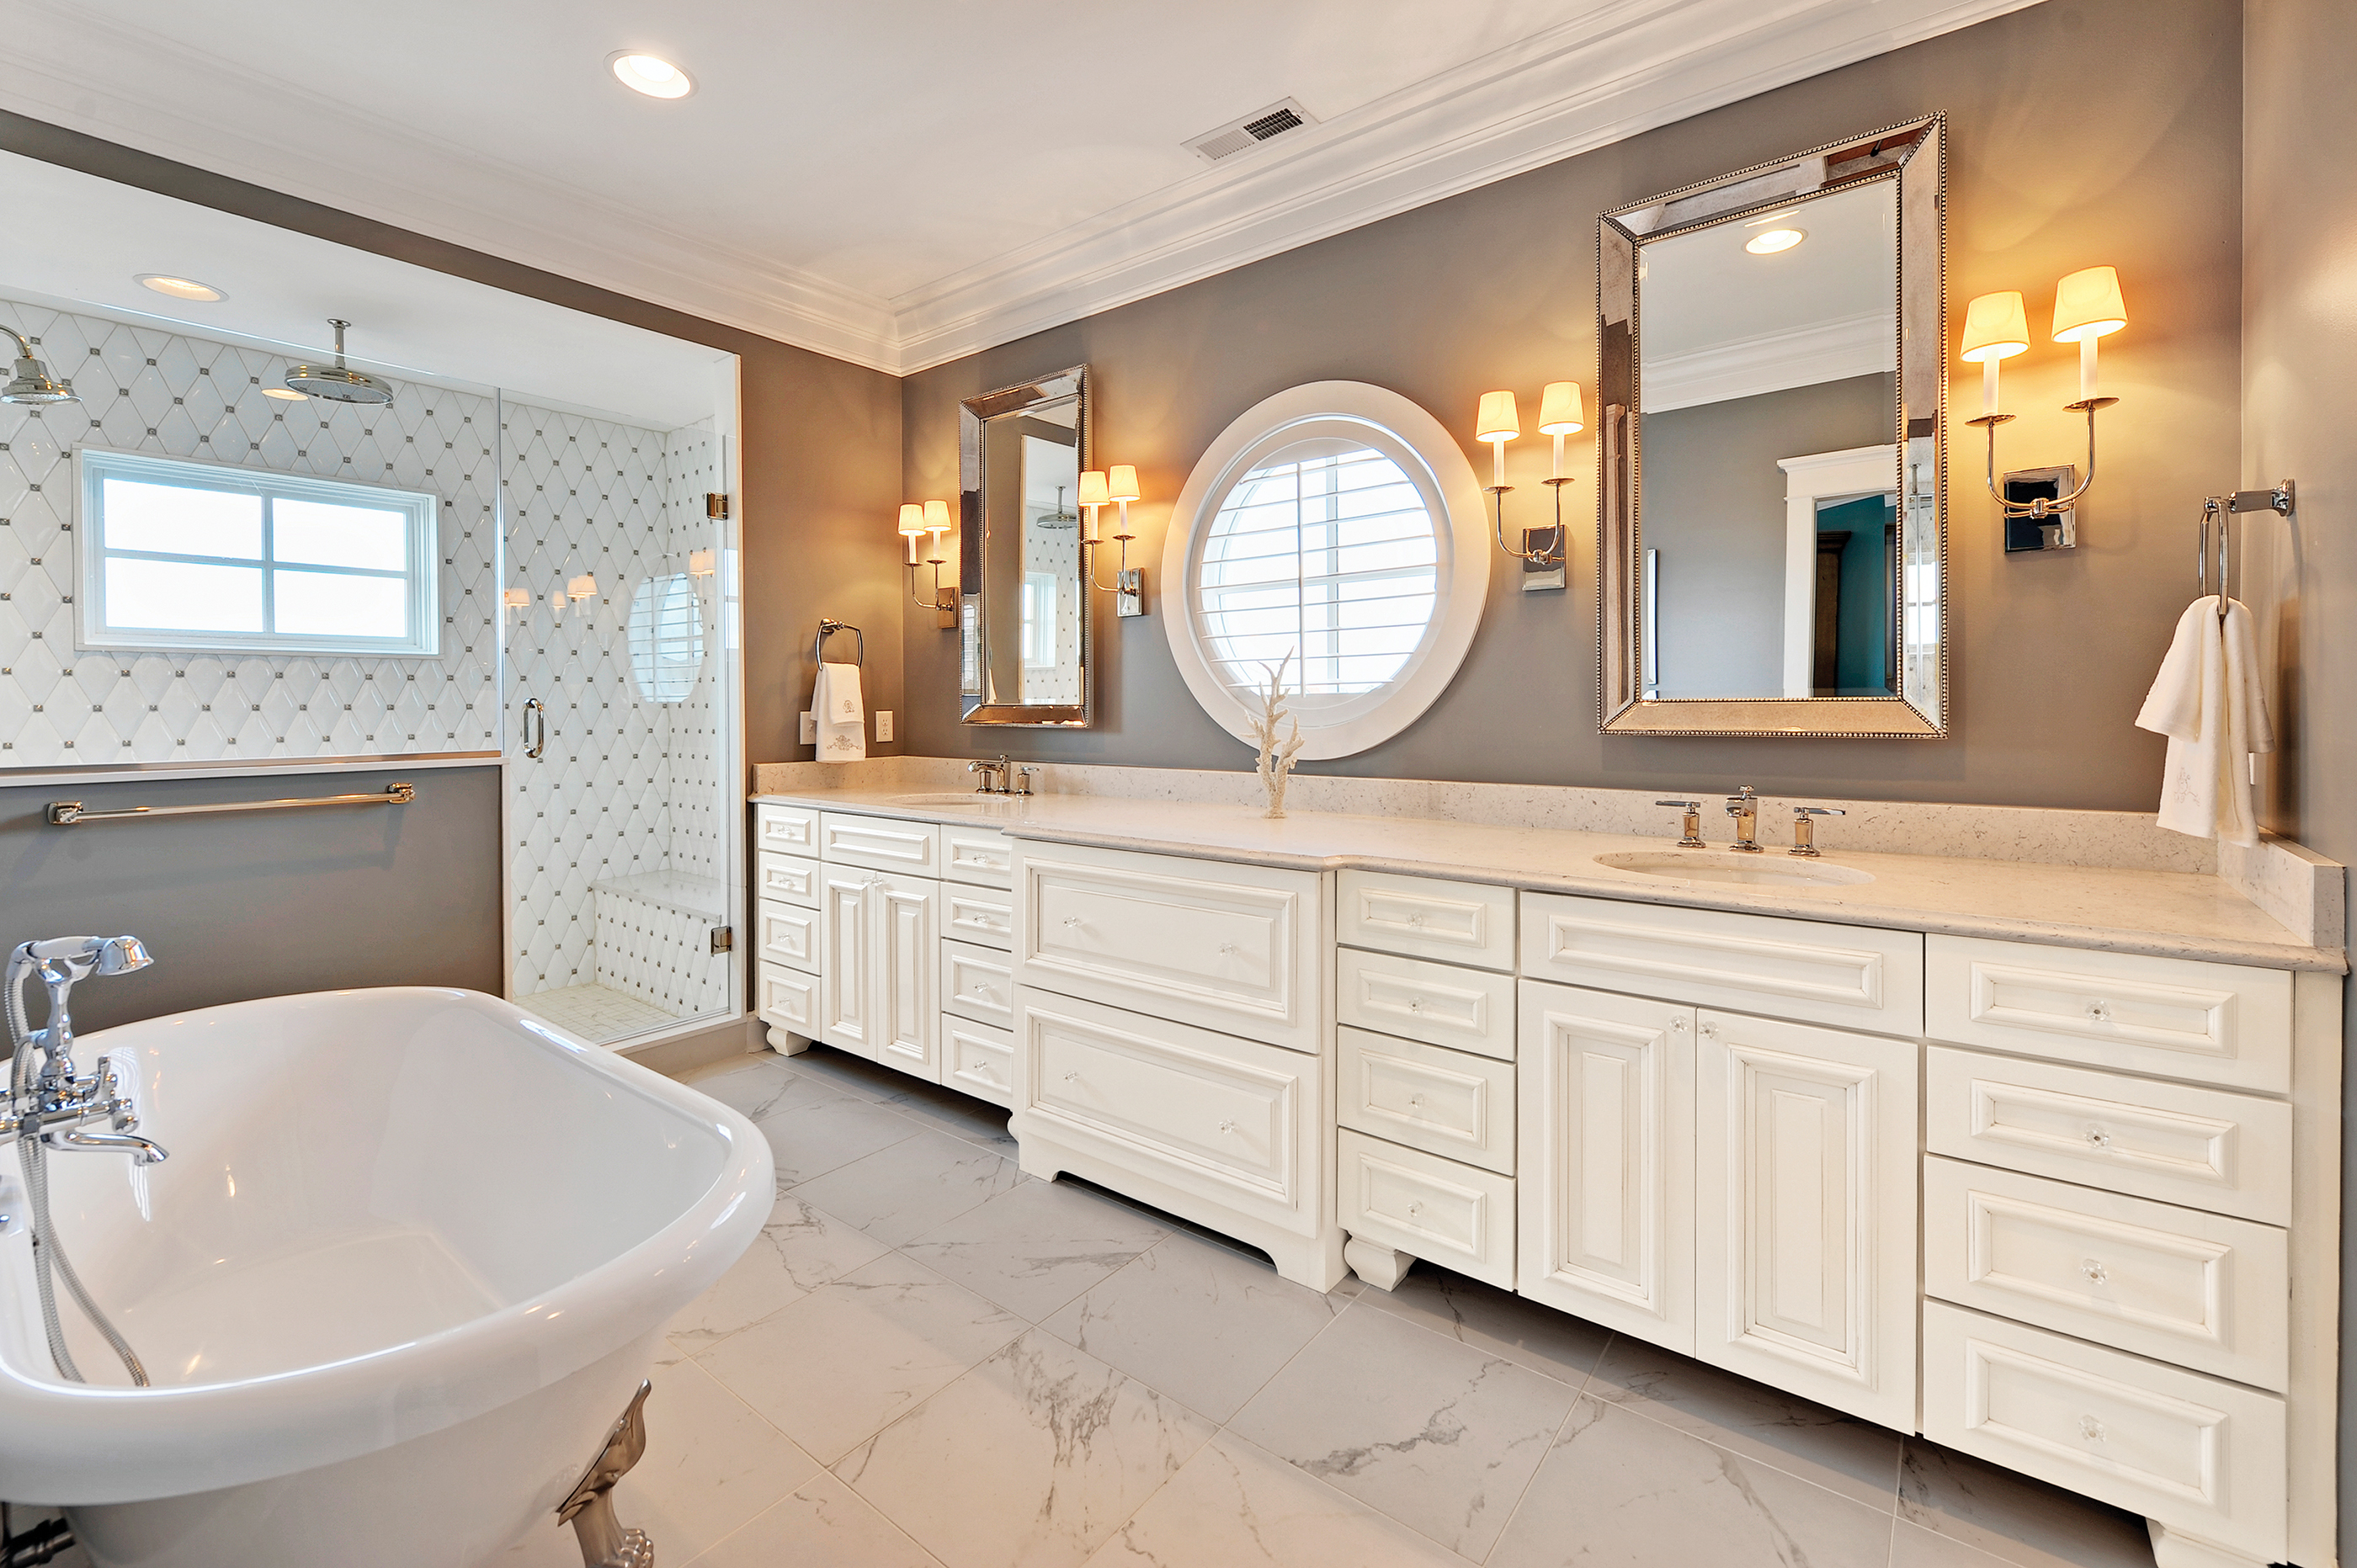 Remodel Bathroom Order 6 things you need to replace in order to renovate your bathroom